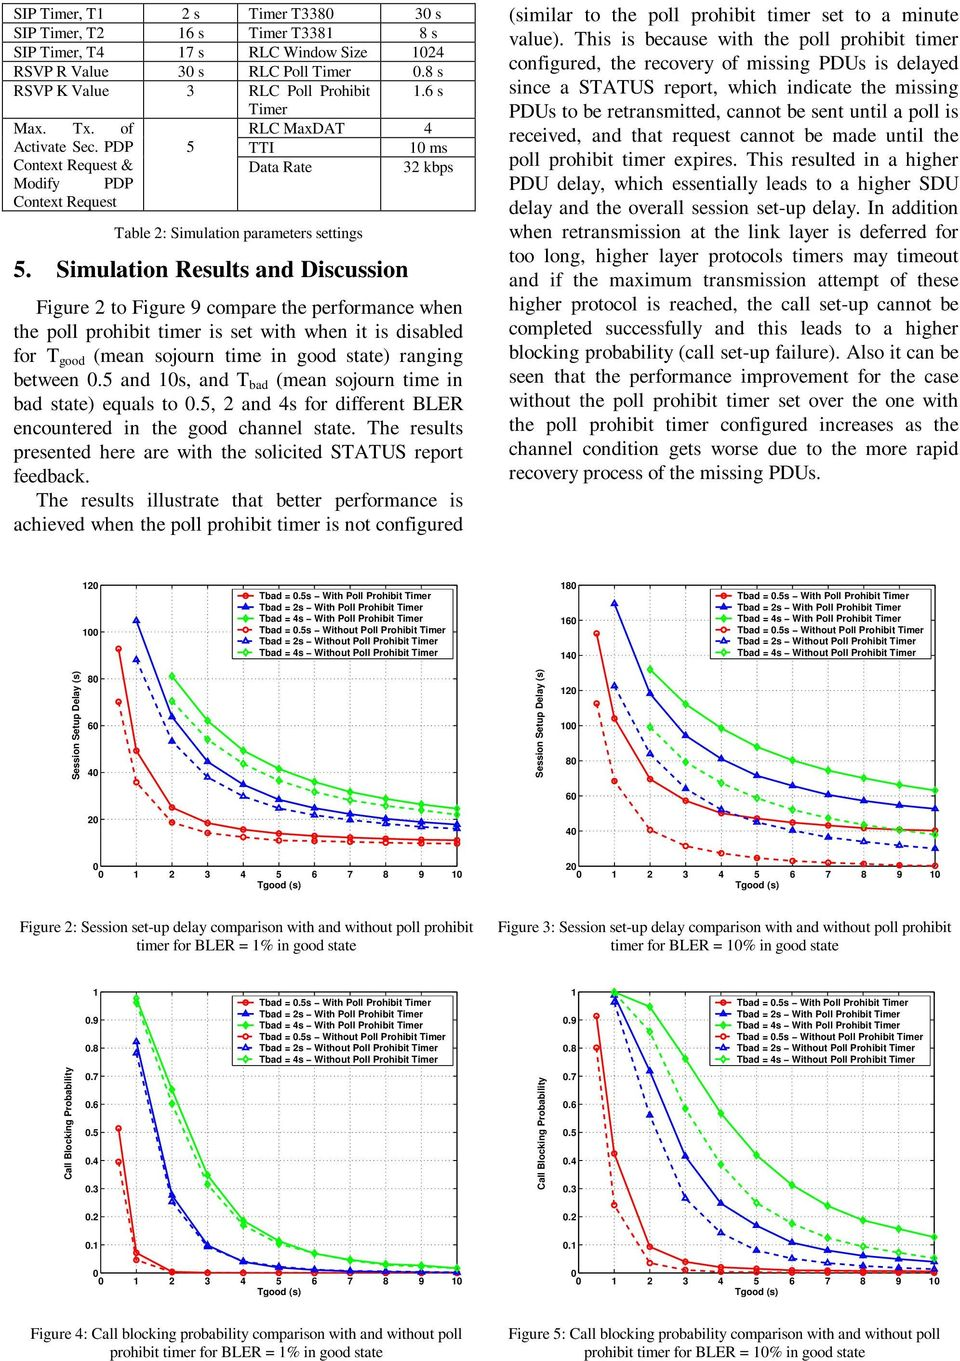 Simulation Results and Discussion Figure to Figure 9 compare the performance when the poll prohibit timer is set with when it is disabled for T good (mean sojourn time in good state) ranging between.